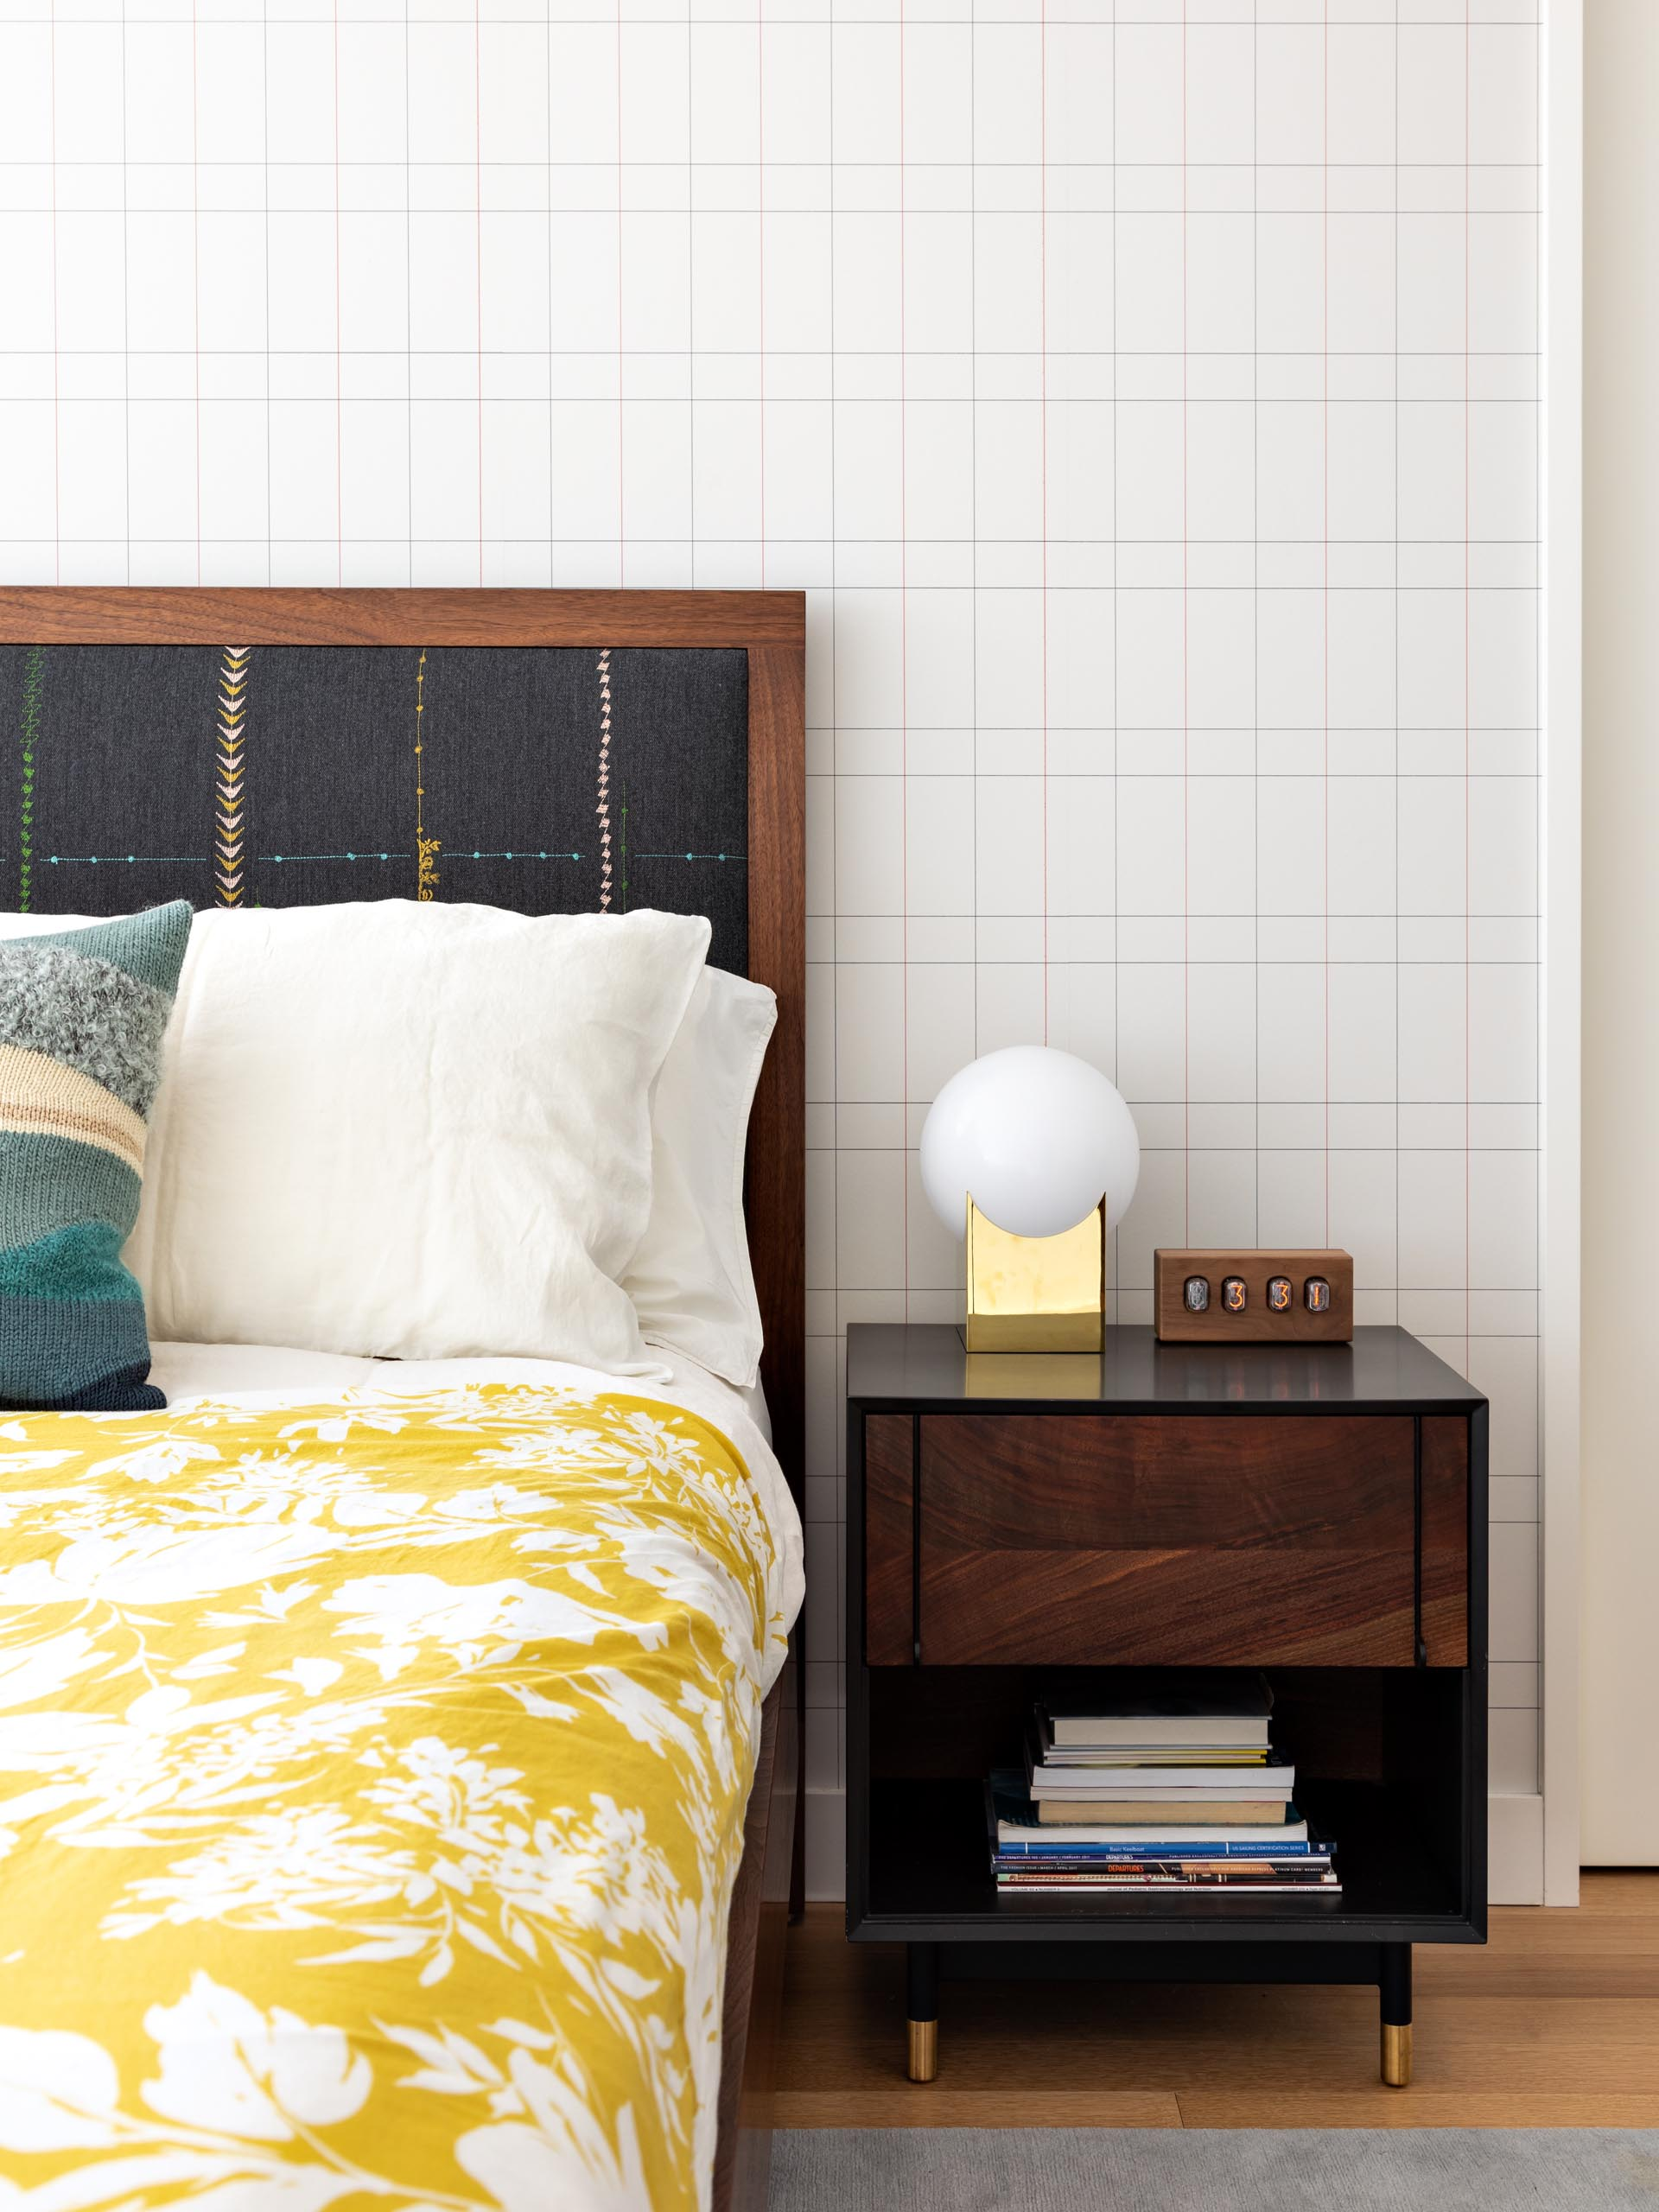 A modern master bedroom that includes wood furniture, pops of color, and a graphic accent wall.